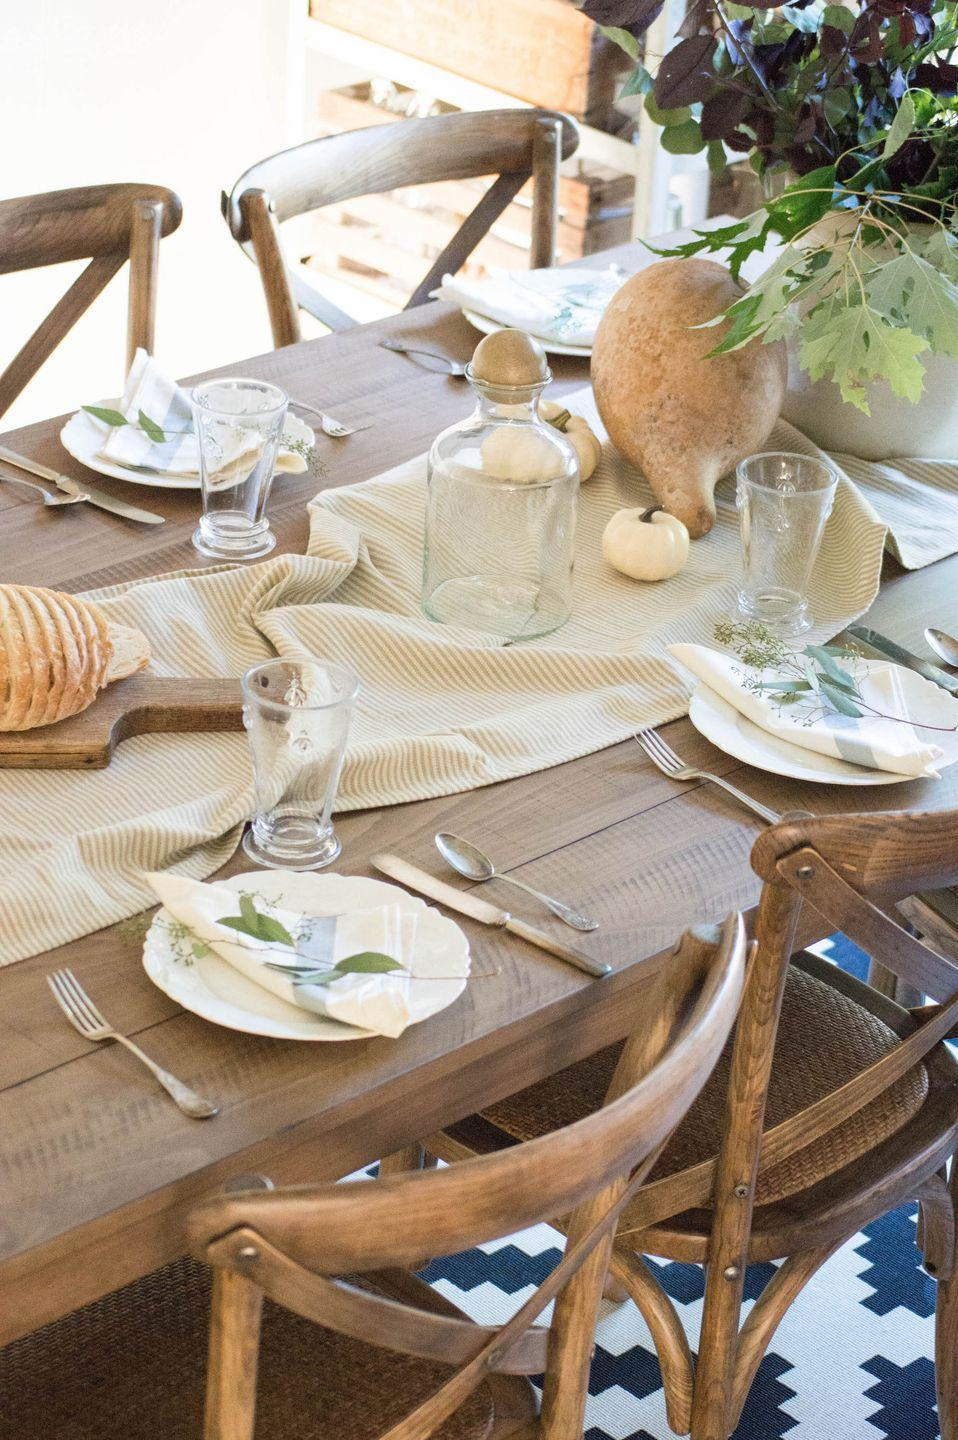 """<p>Create a relaxed yet <a href=""""https://www.elledecor.com/life-culture/entertaining/g3288/best-wedding-tables/"""" rel=""""nofollow noopener"""" target=""""_blank"""" data-ylk=""""slk:elegant tablescape"""" class=""""link rapid-noclick-resp"""">elegant tablescape</a> by ruffling a neutral table runner and accenting it with small gourds, as in this dining room table from <a href=""""http://www.unexpectedelegance.com/5-ways-to-update-your-dining-room-table/"""" rel=""""nofollow noopener"""" target=""""_blank"""" data-ylk=""""slk:Unexpected Elegance"""" class=""""link rapid-noclick-resp"""">Unexpected Elegance</a>. </p>"""